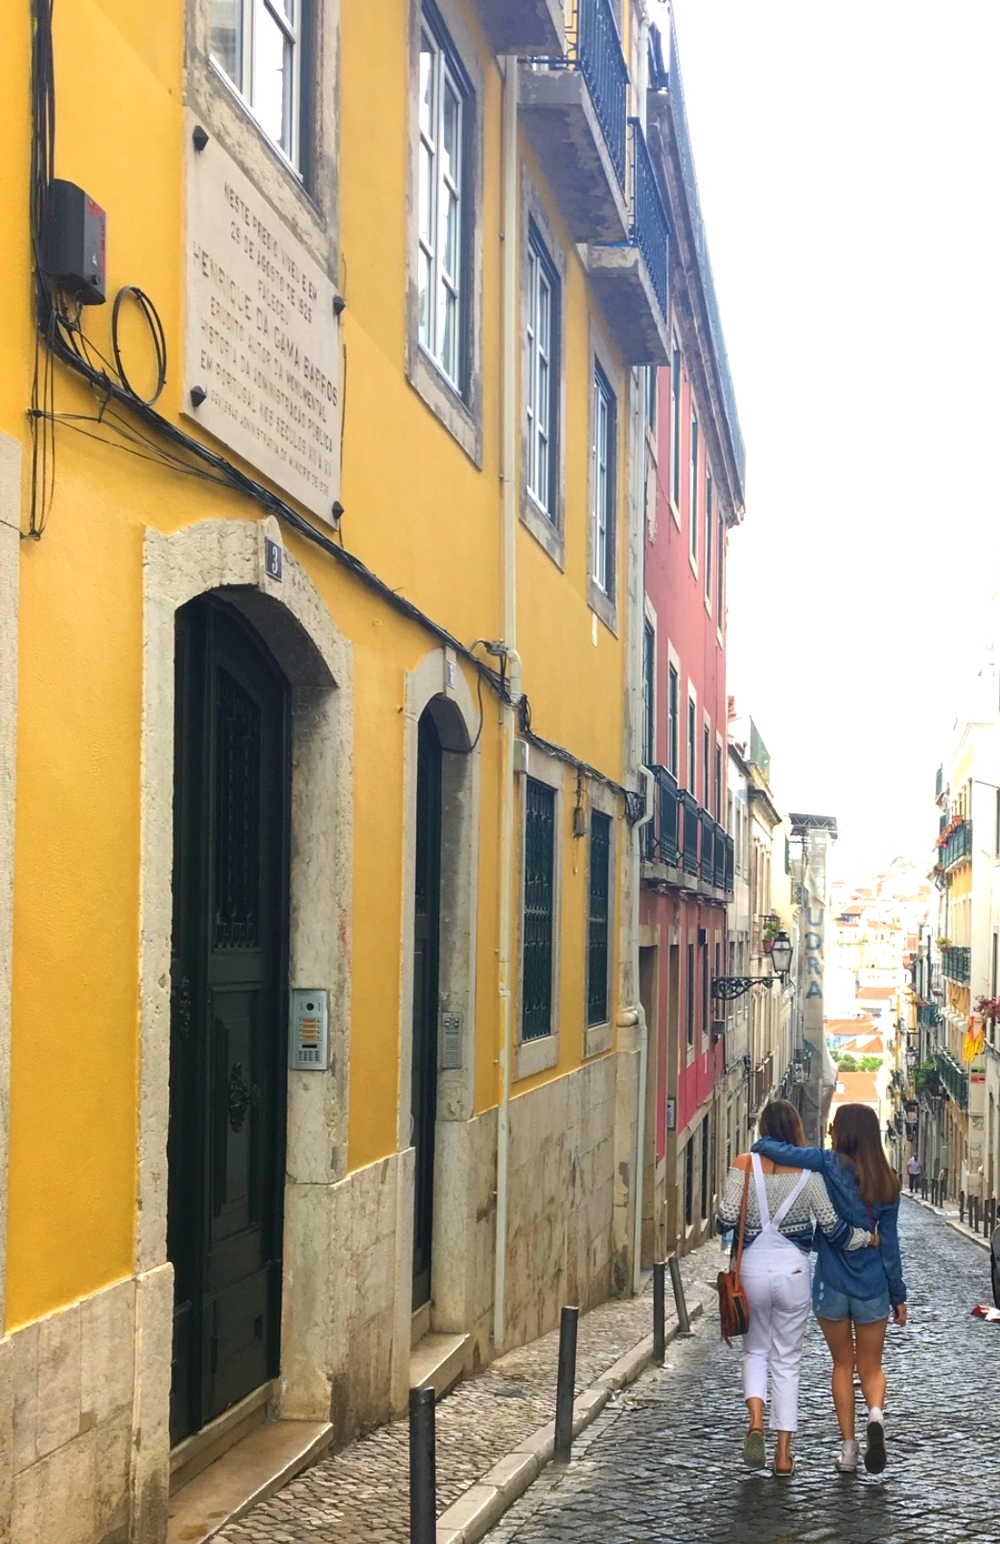 Amanda and her sister, Vikki, walking the streets of Lisbon.